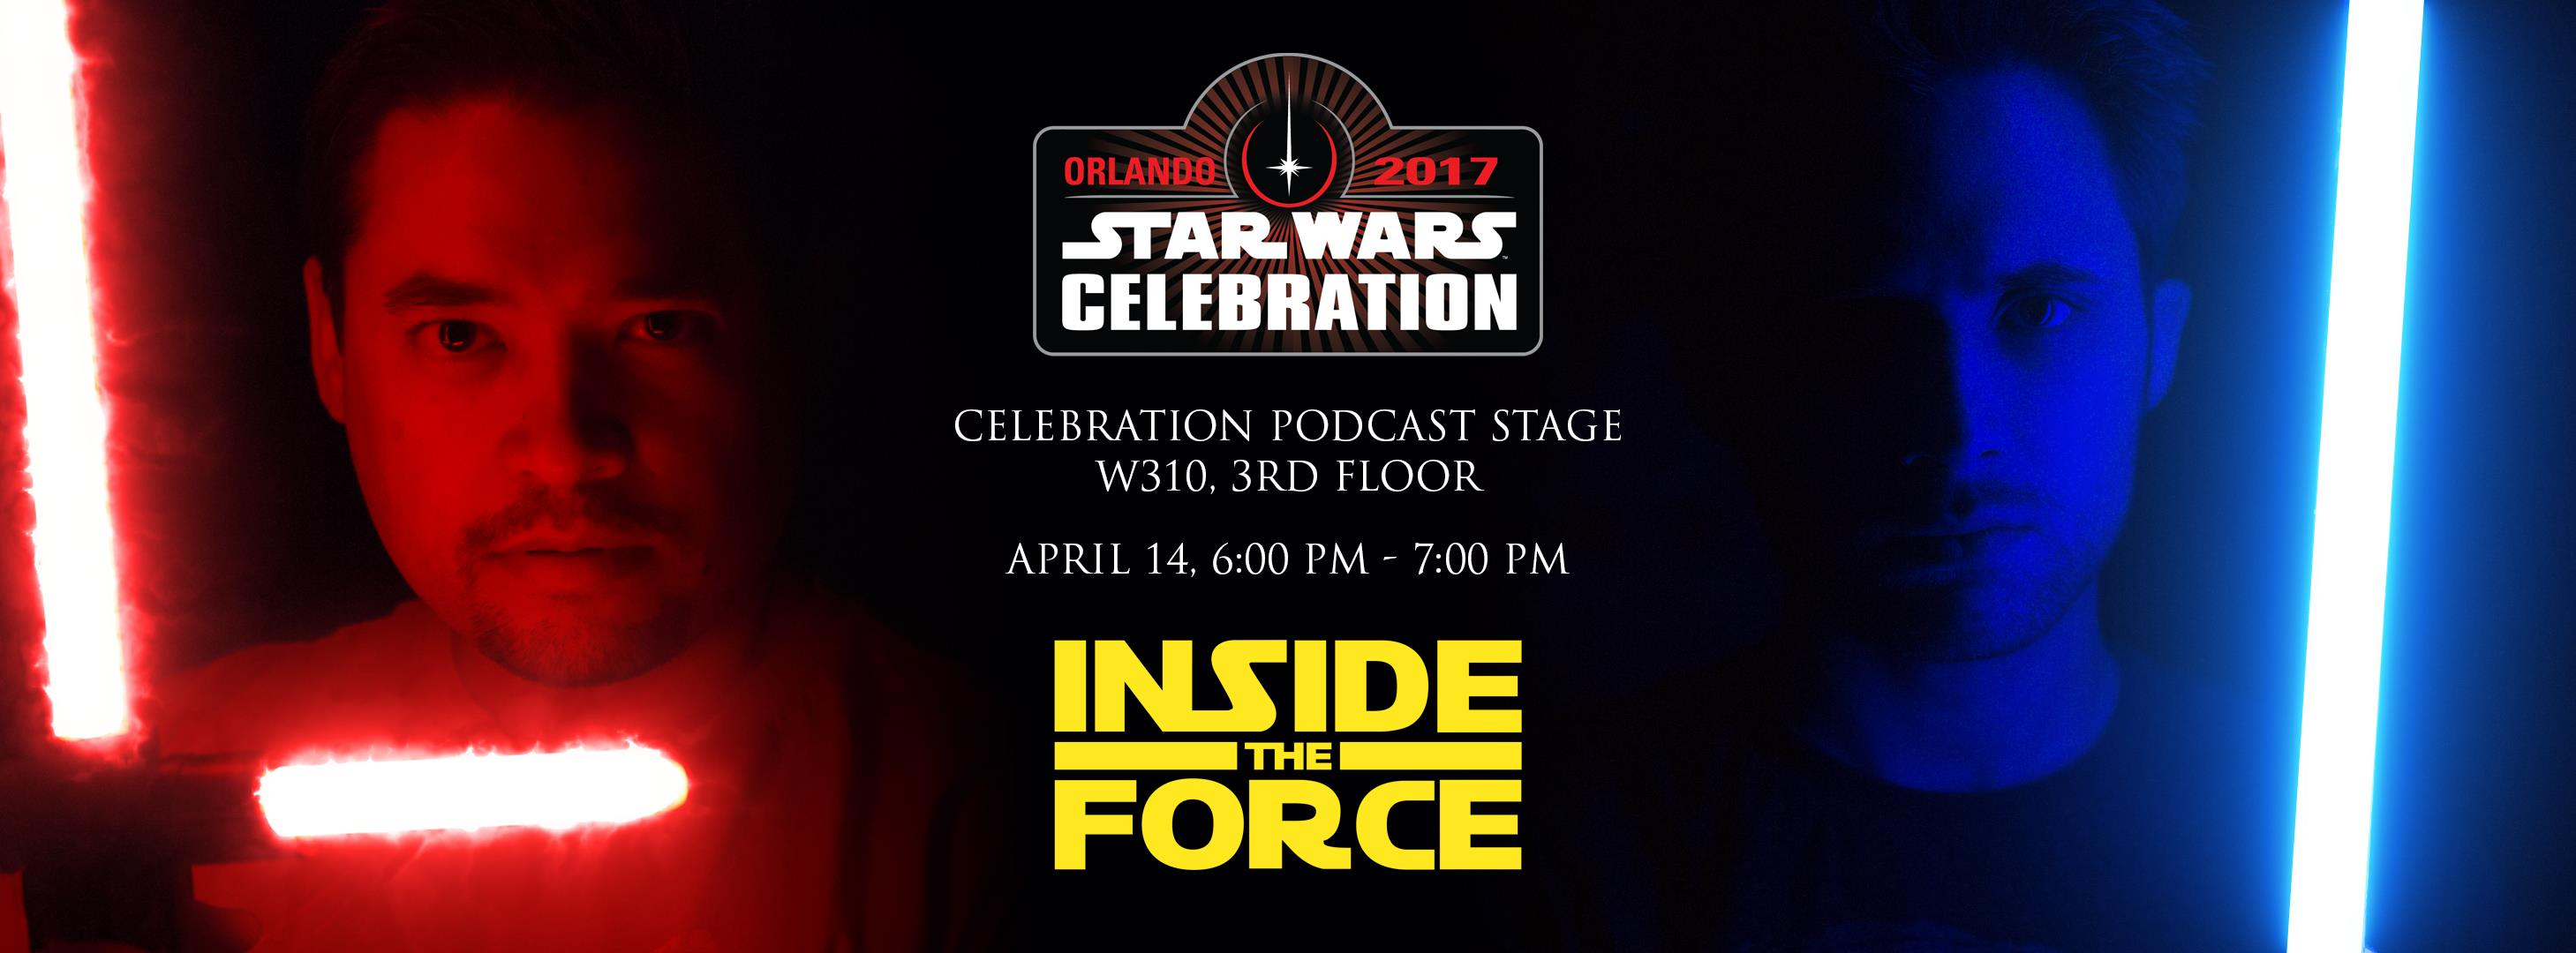 Inside The Force: A Star Wars Podcast